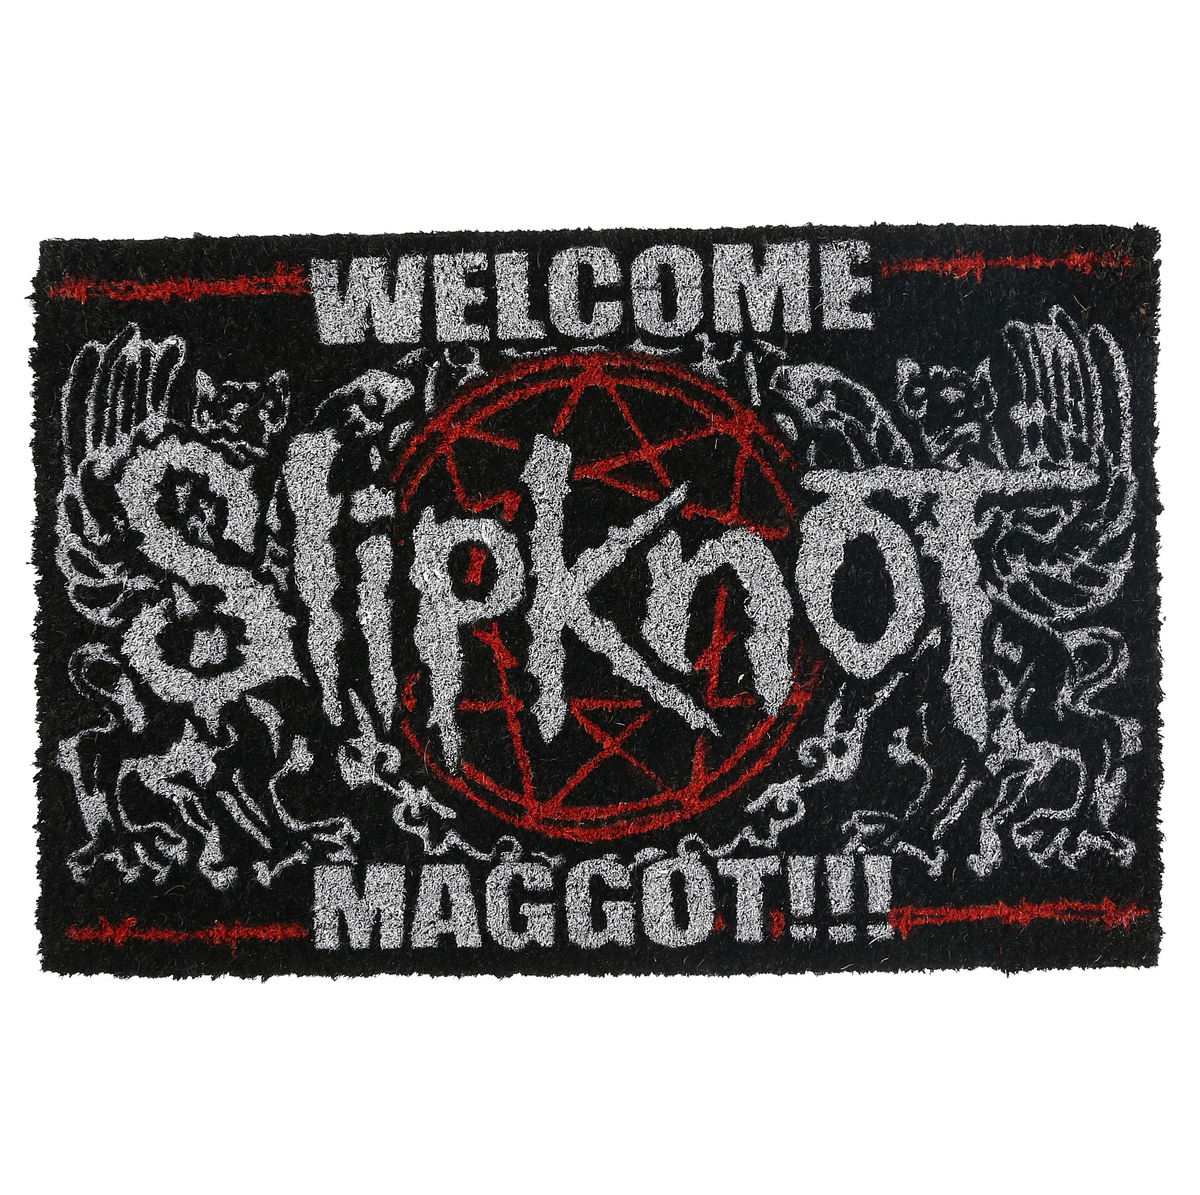 NNM Slipknot WELCOME